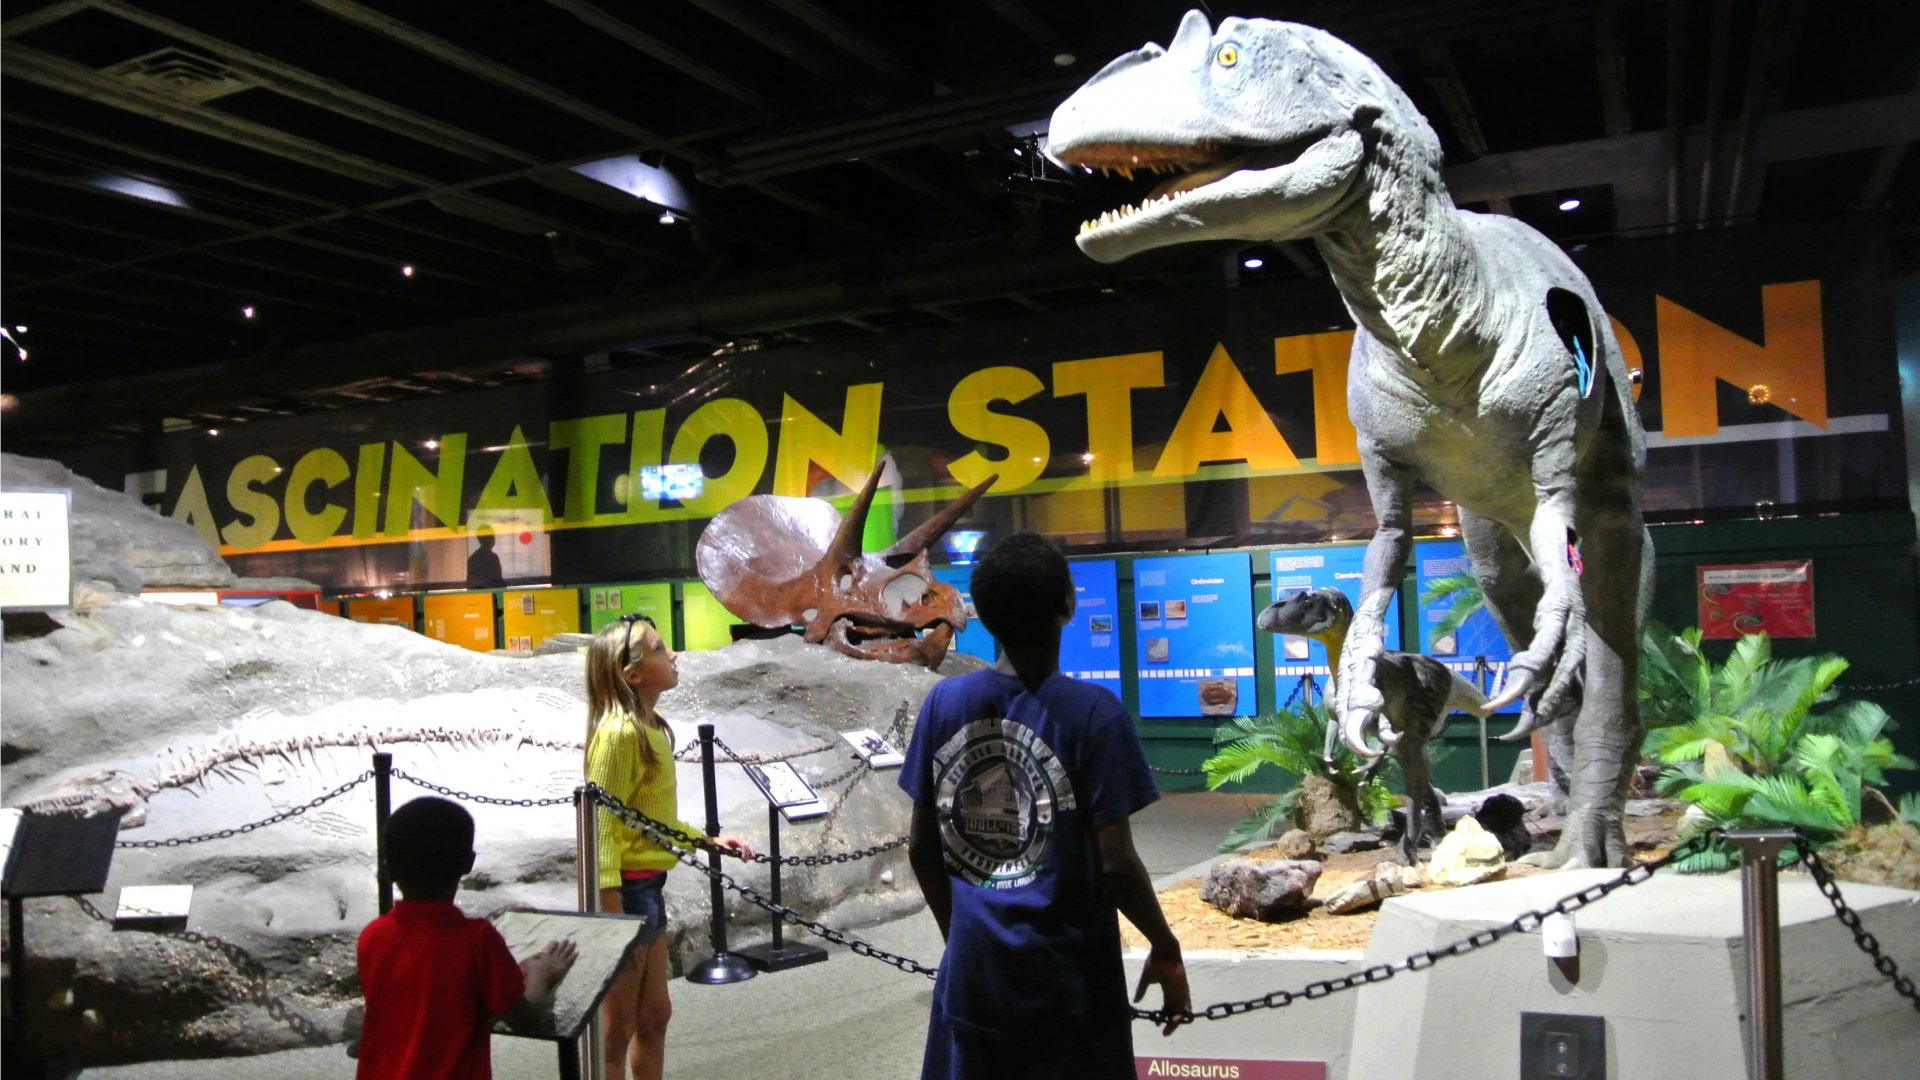 What To Do In Canton Ohio Attractions Museums Parks: dinosaur museum ohio